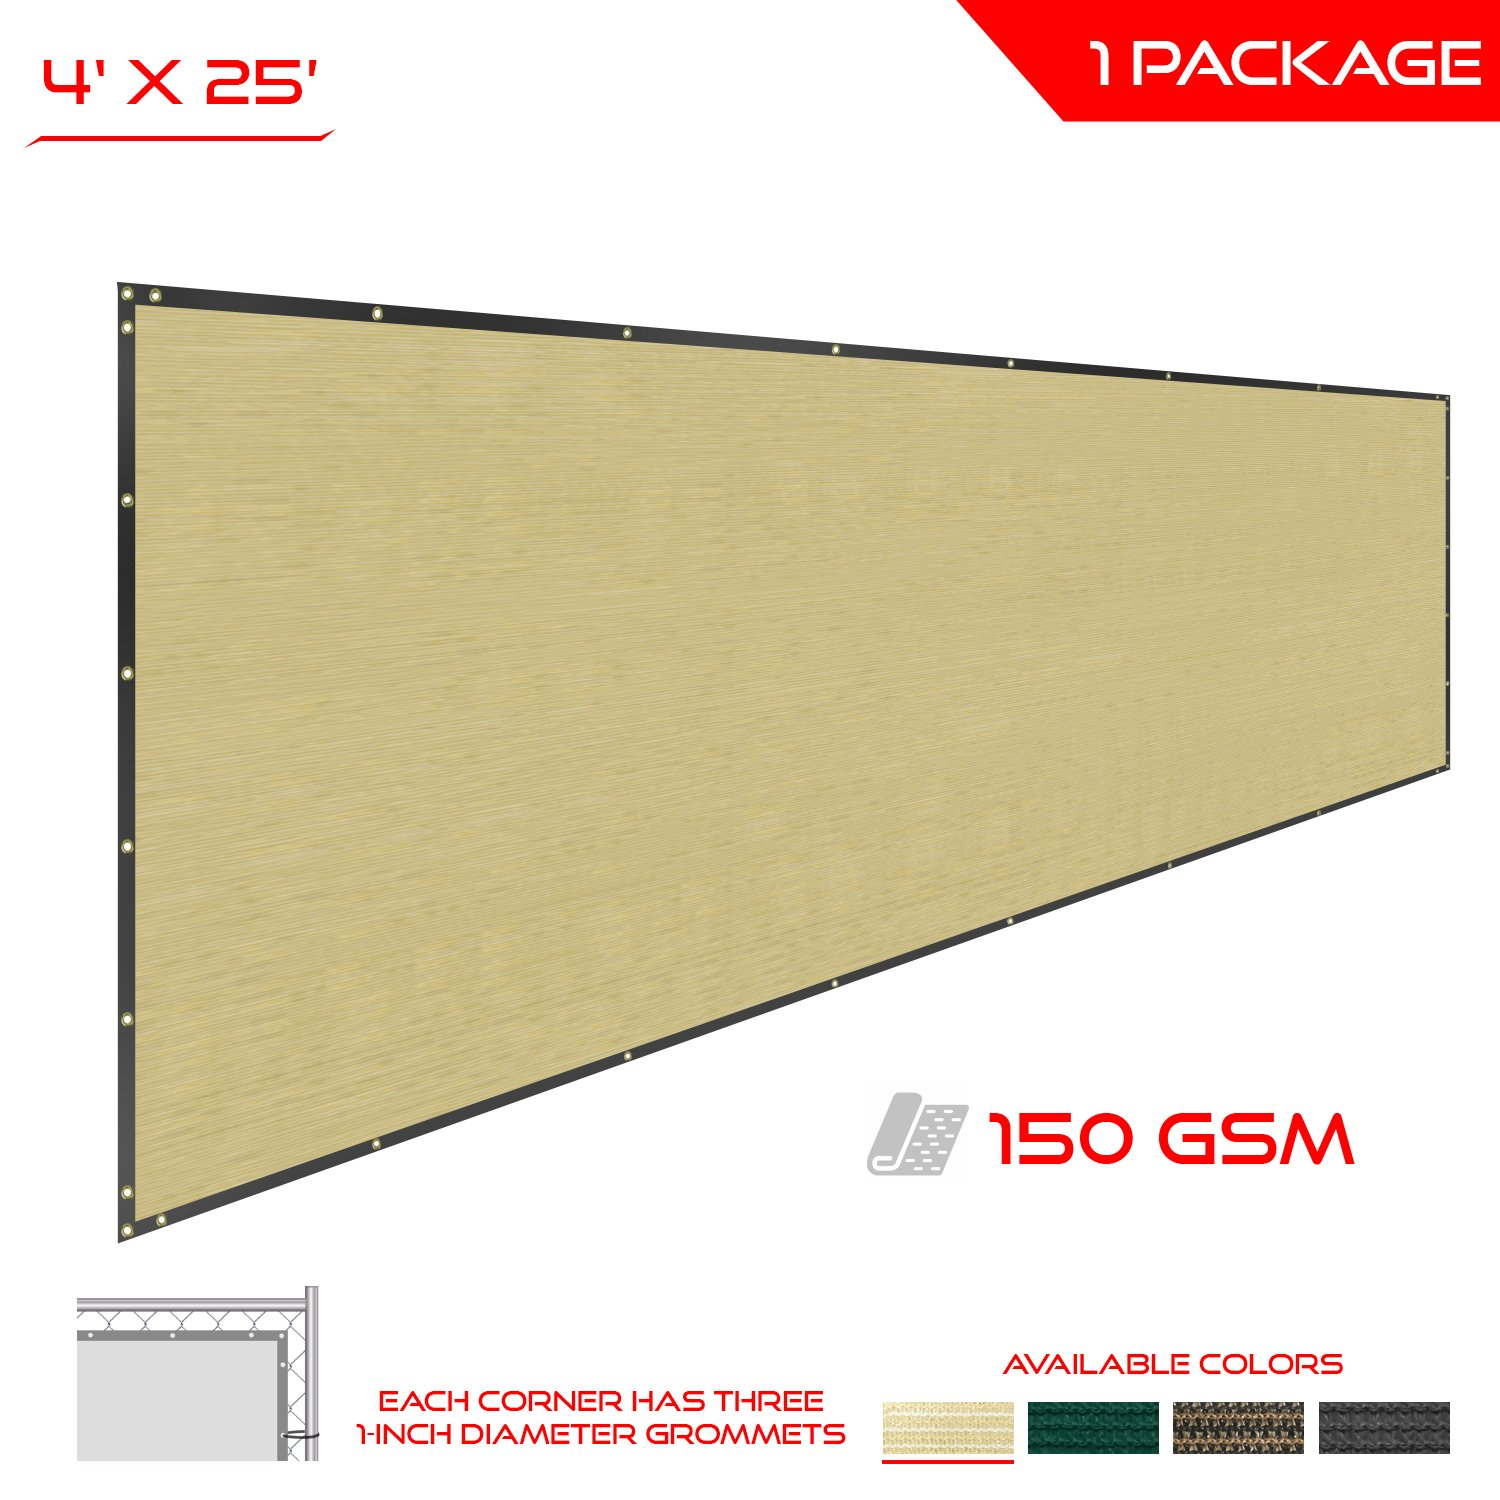 The Patio Shop Privacy Fence Screen 4' x 25' Commercial Outdoor Shade Windscreen Mesh Fabric with brass Gromment 150 GSM 88% Blockage in color Beige-2 Years Warranty